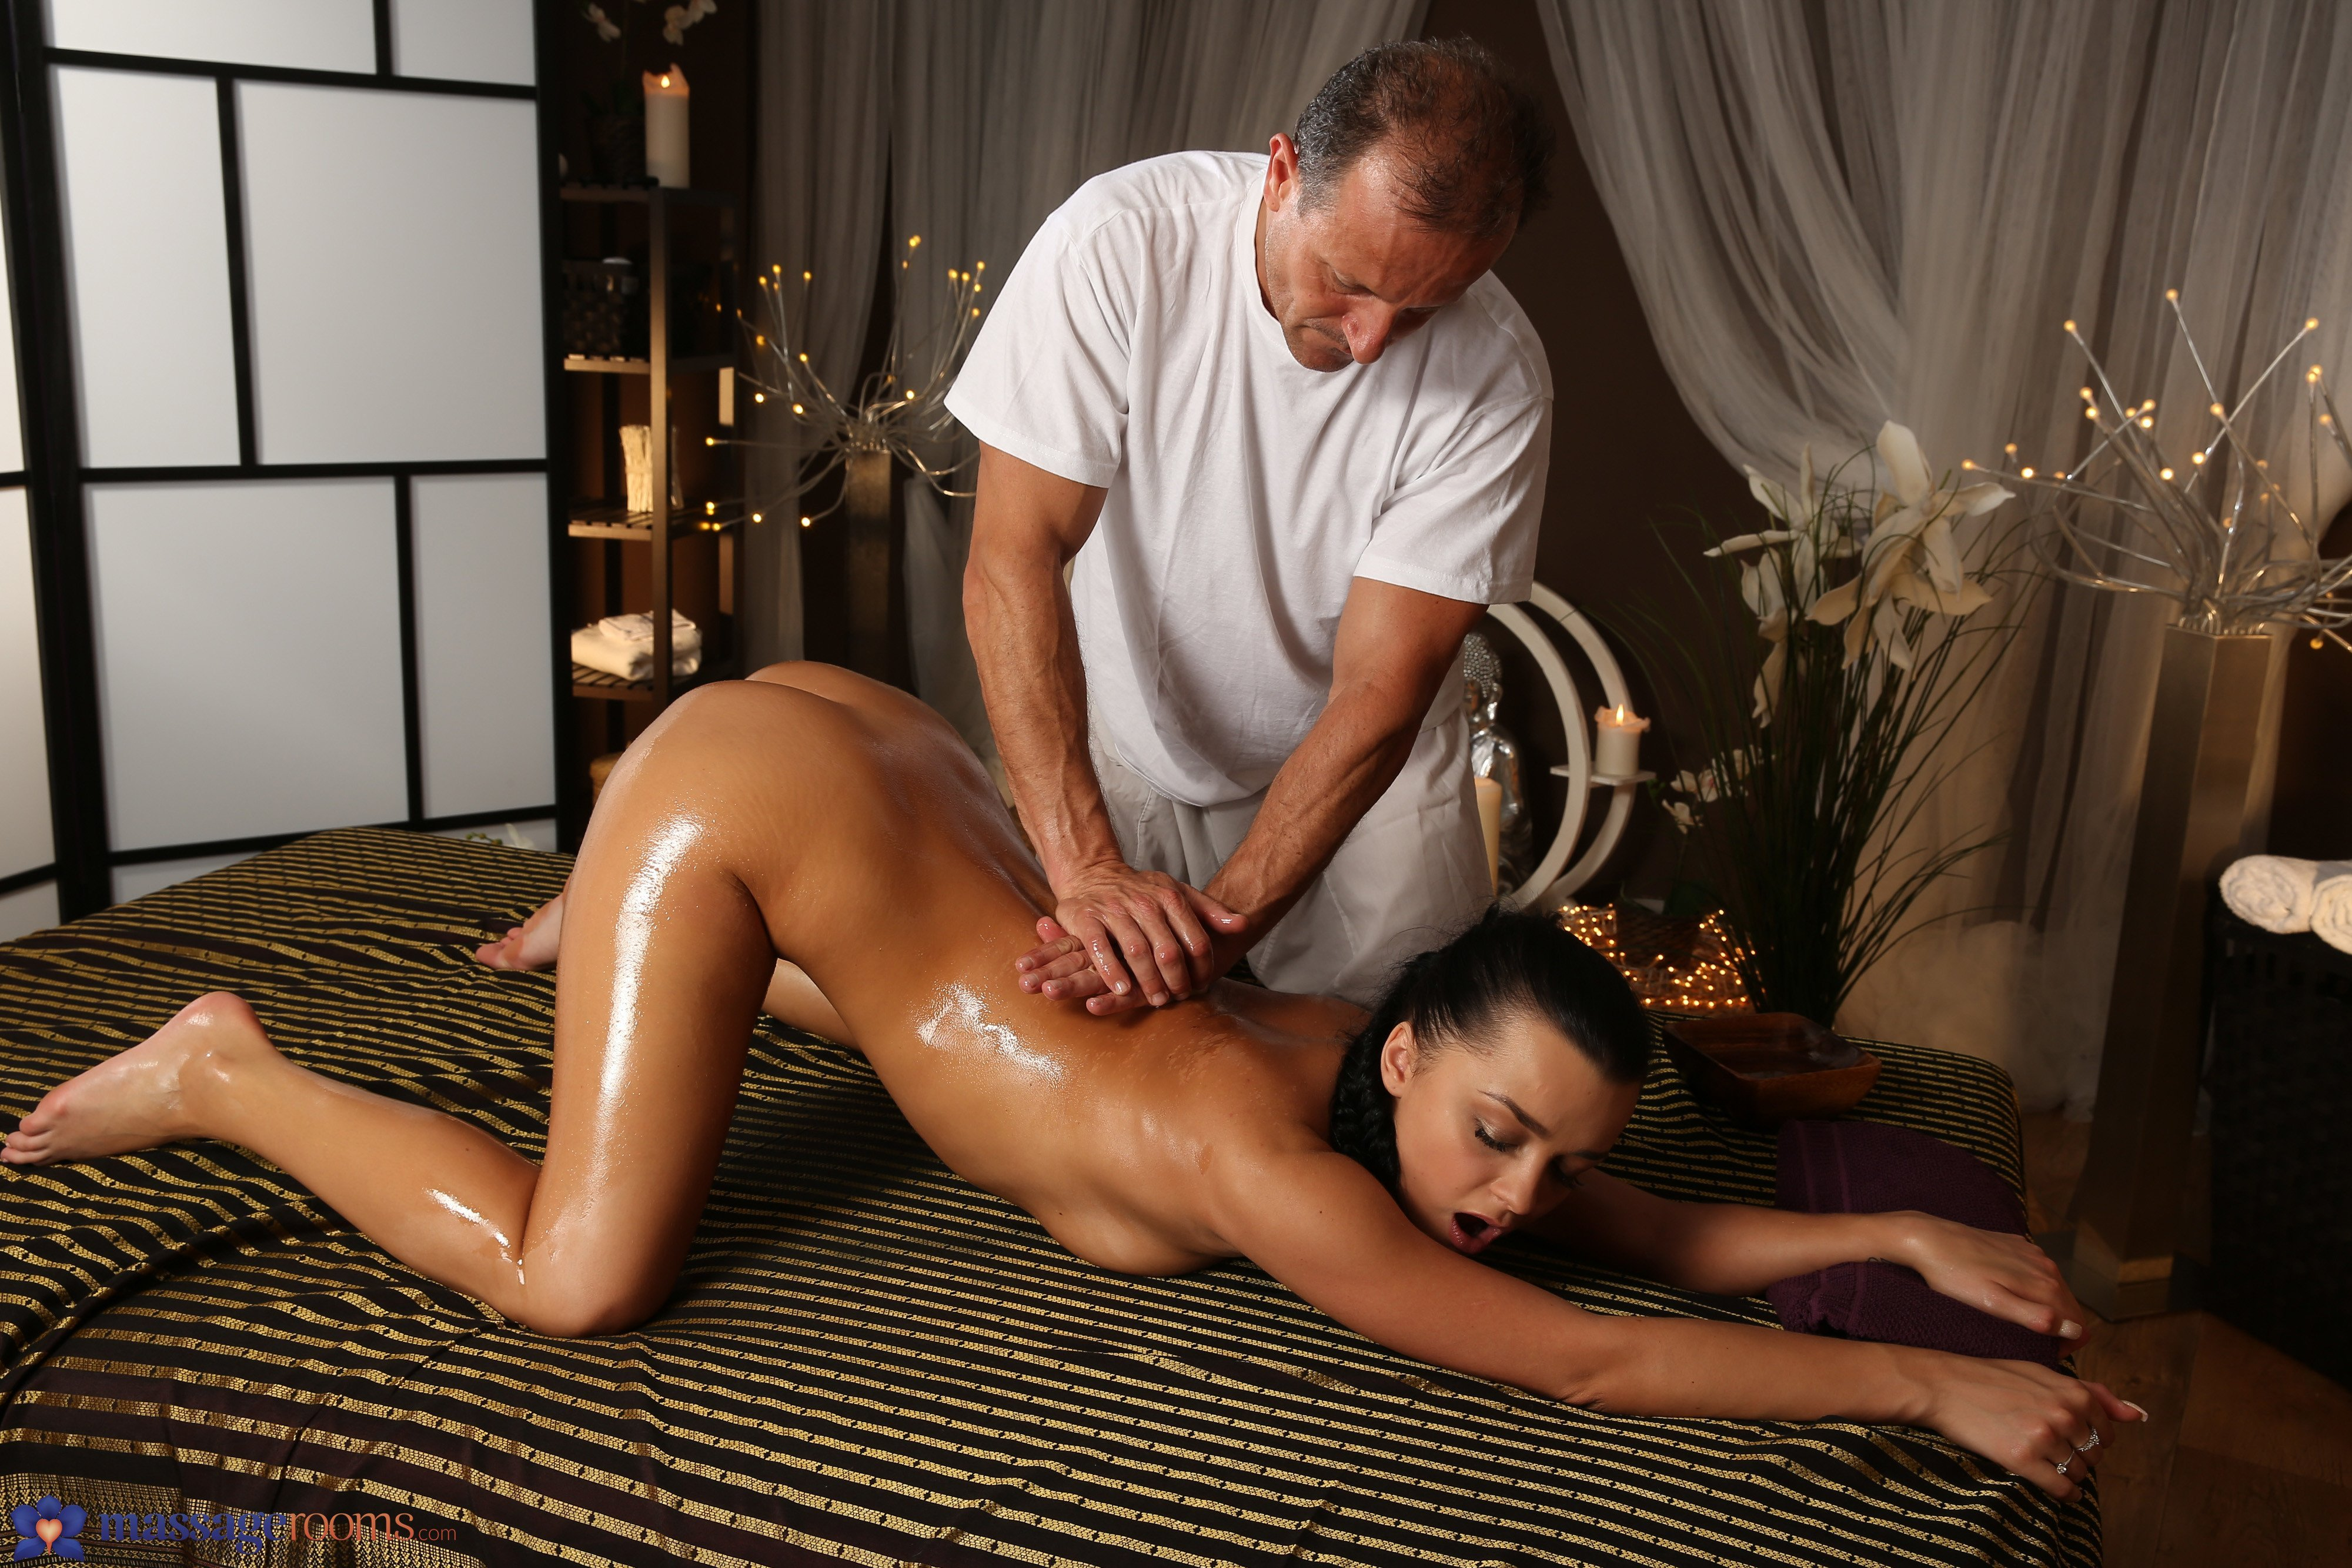 Youn Brunette Was Very Shy On Her First Erotic Massage Ans She Leave Happy After Big Orgasm